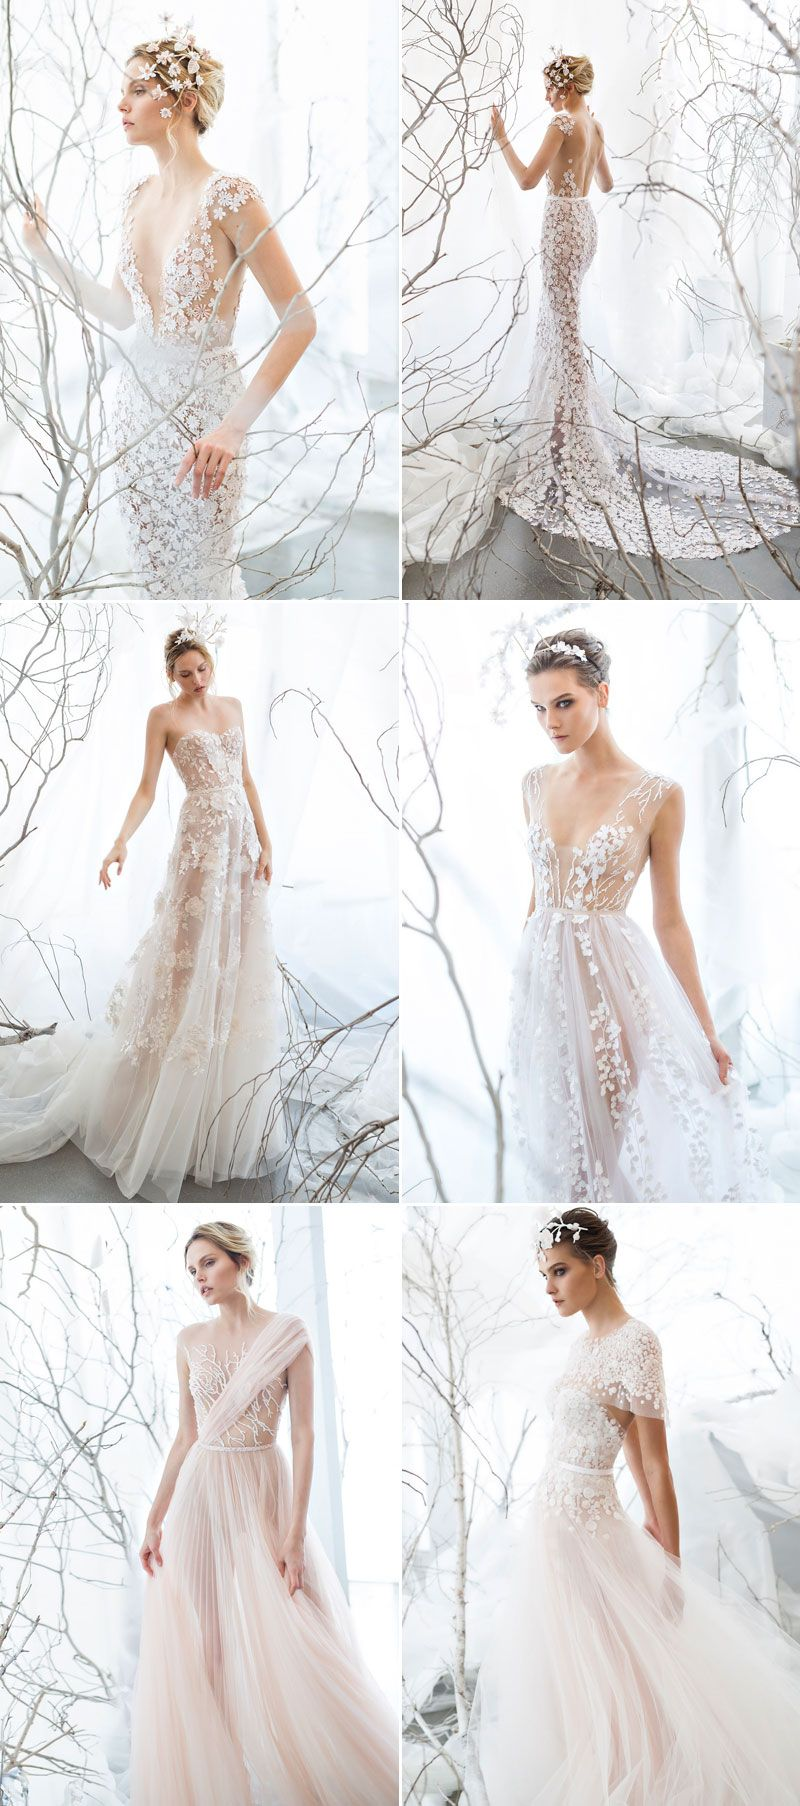 26 Ethereal Wedding Dresses That Look Like They Belong In Fairy Tales Wedding Dresses Whimsical Ethereal Wedding Dress Fairy Wedding Dress